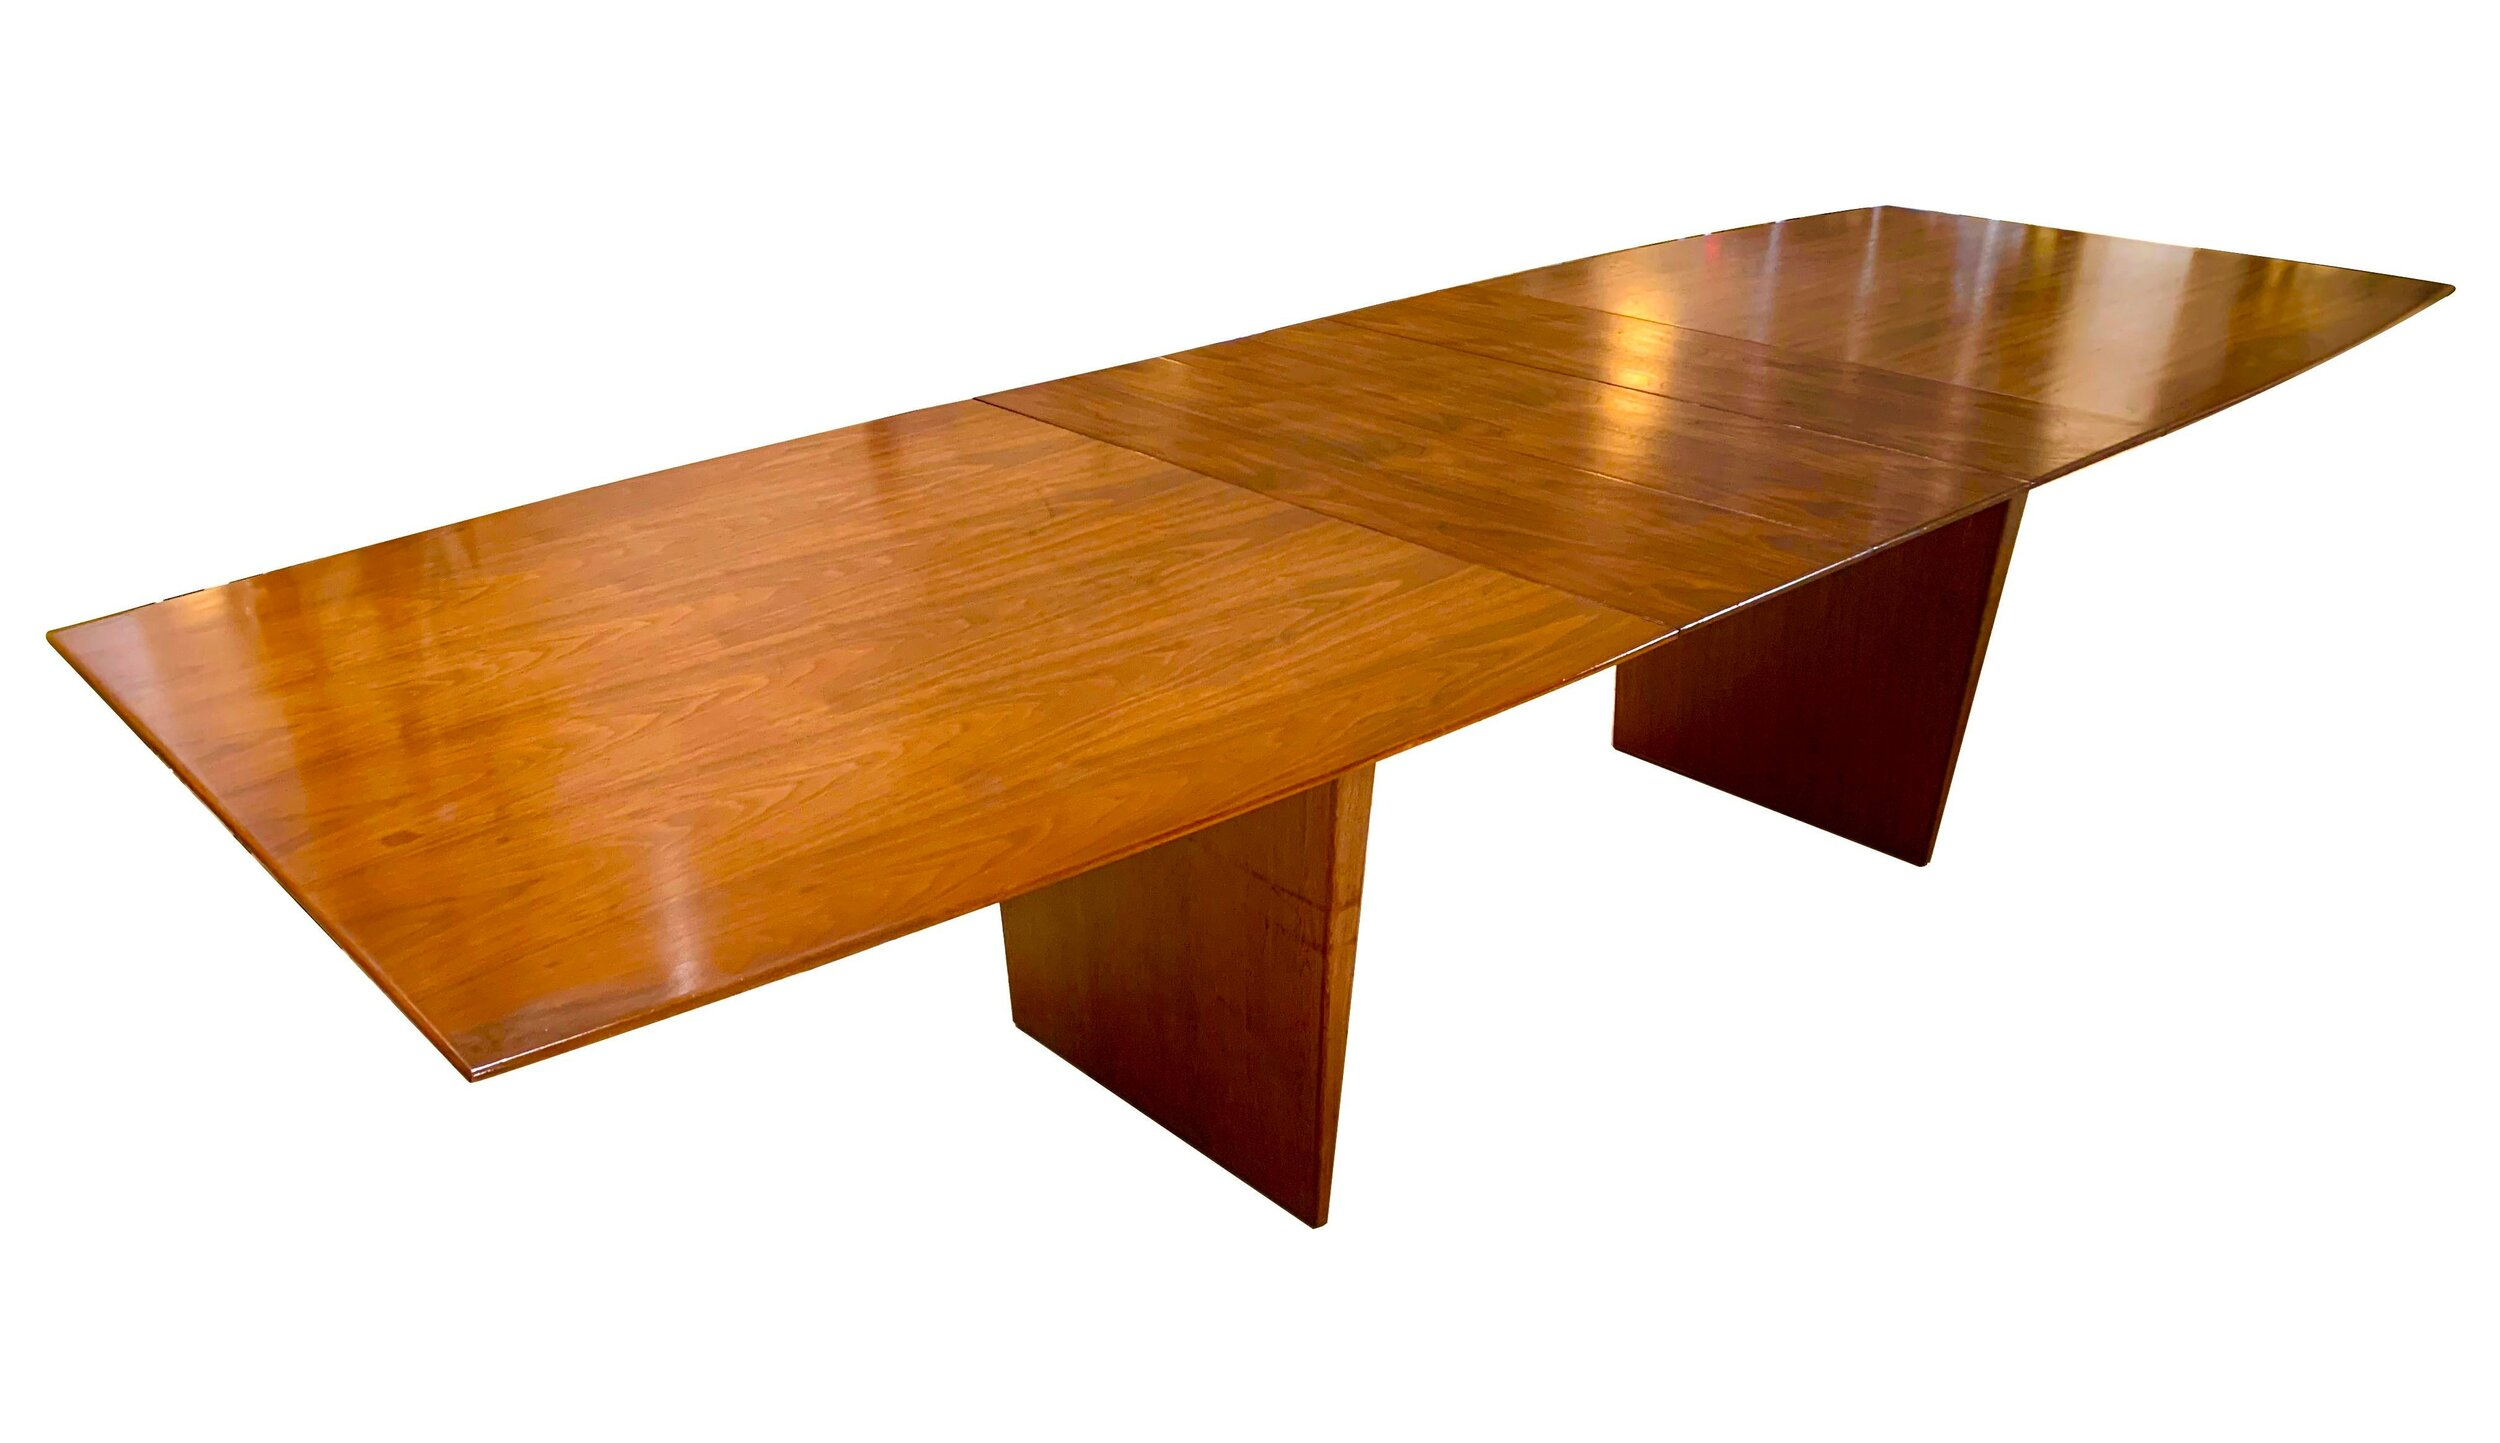 1971 Mid Century Modern Edward Wormley For Dunbar Dining Table With Three Leaves Scout Living